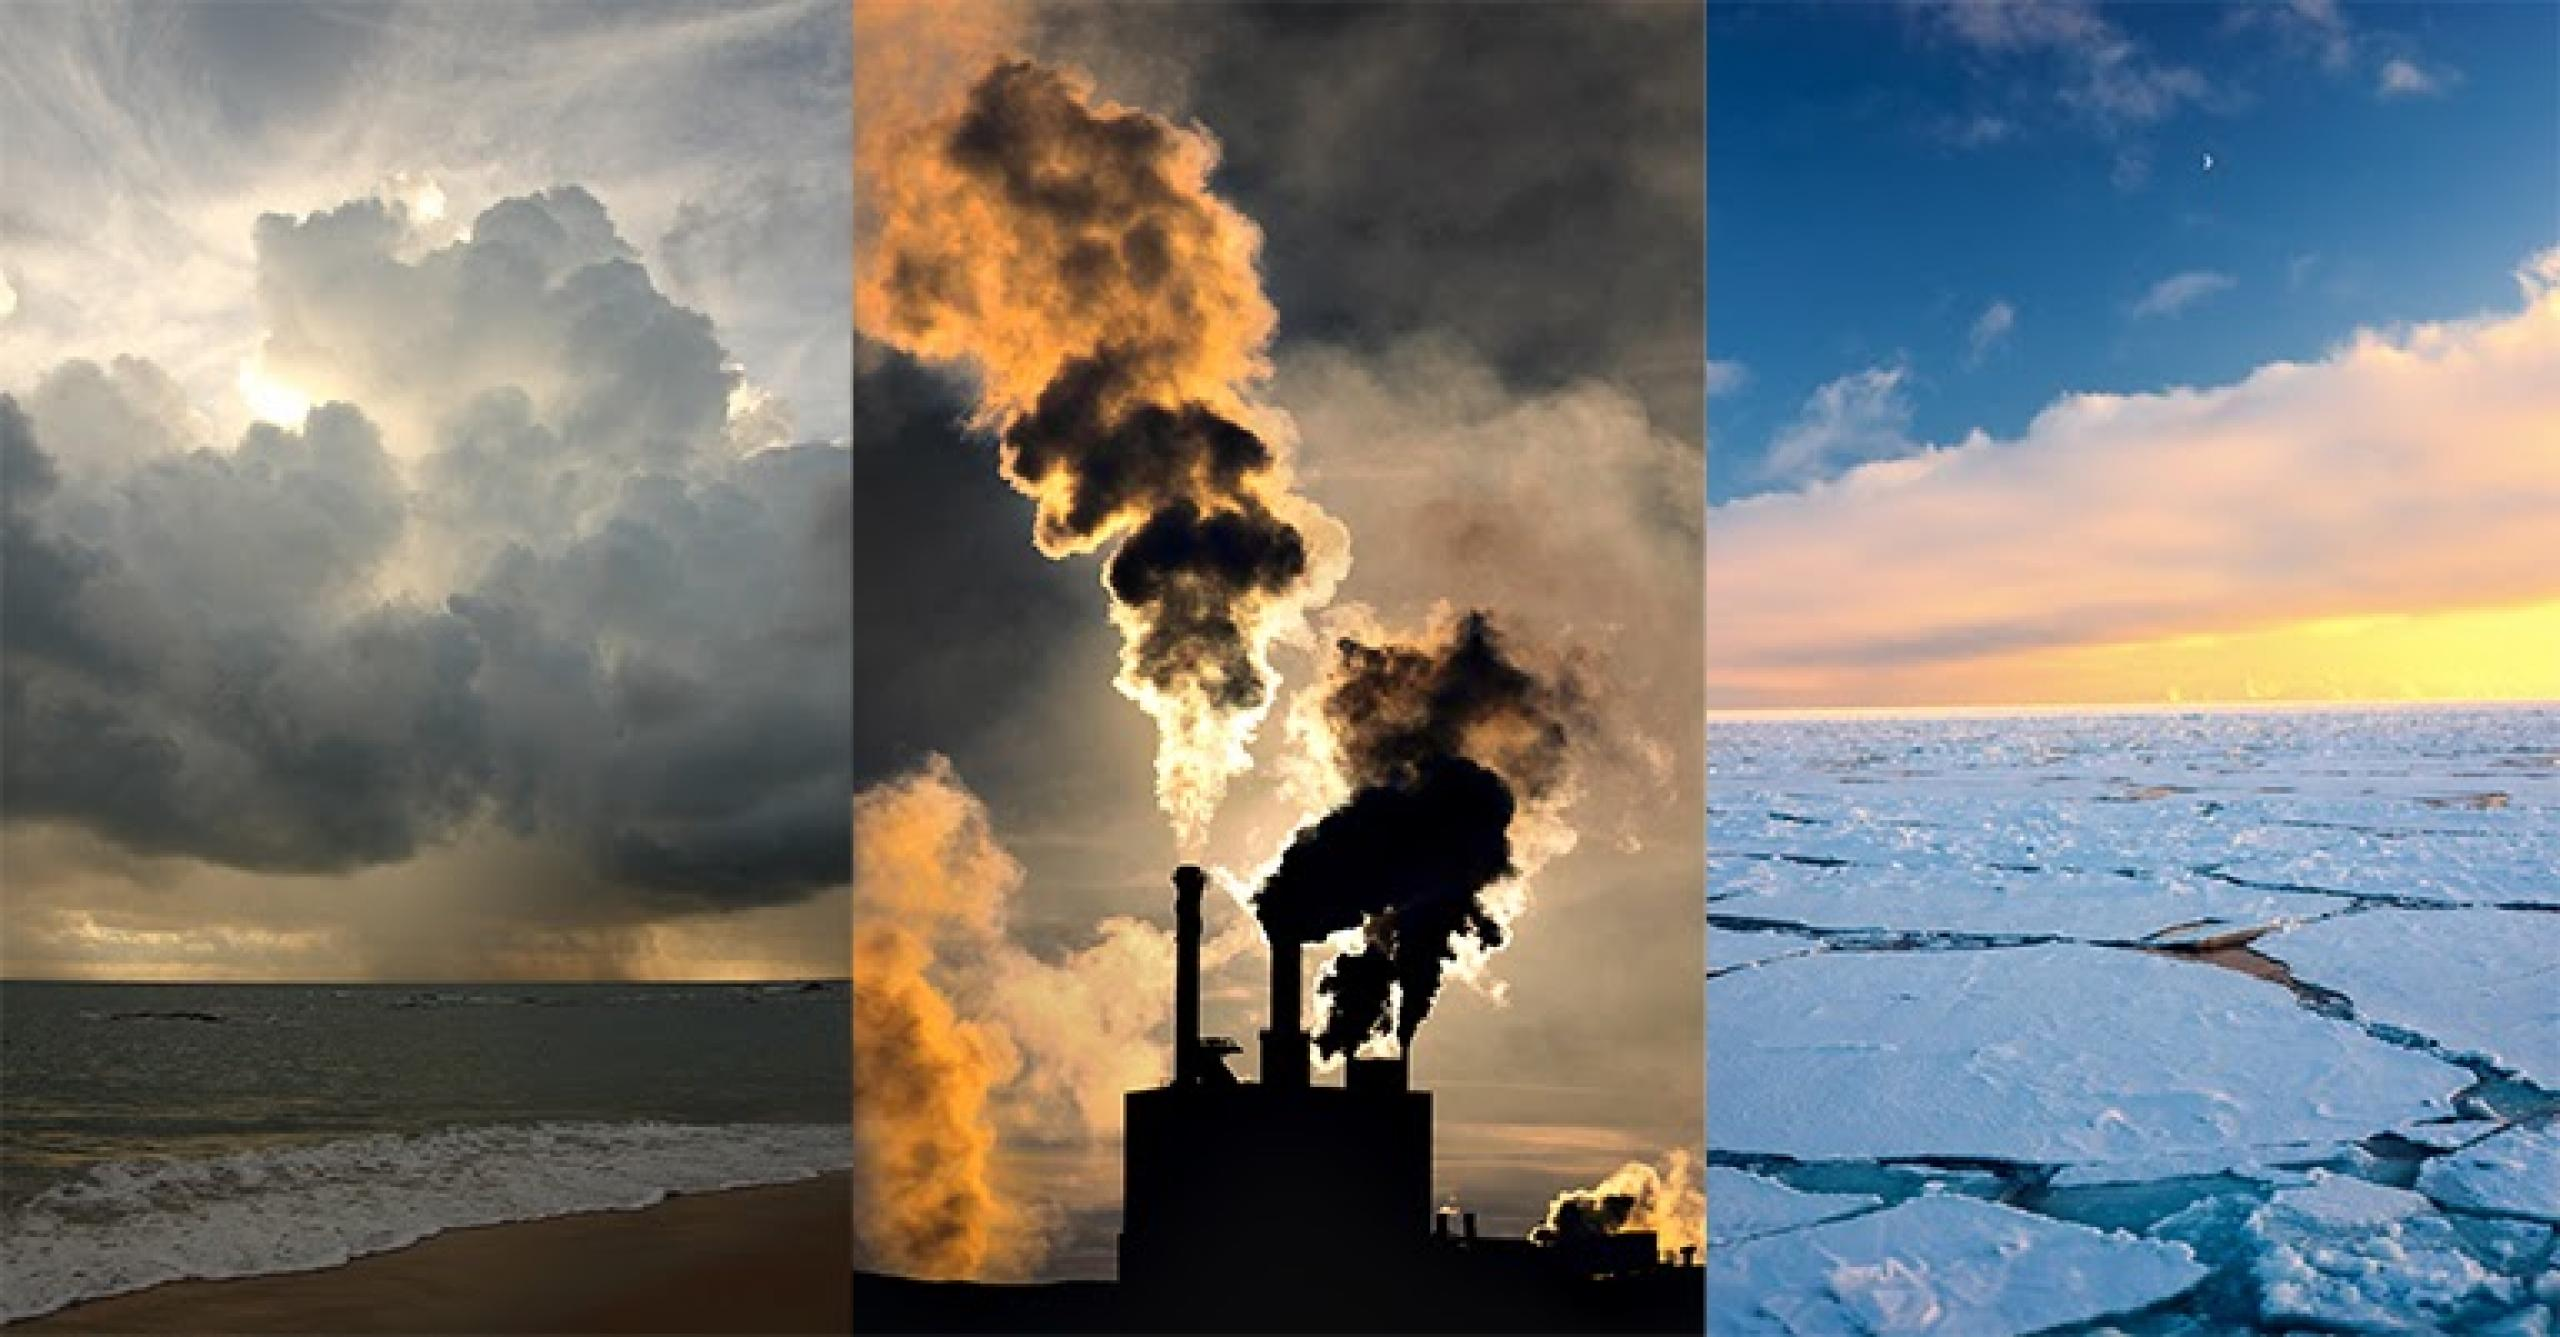 Collage of 3 images: storm clouds, smoke and exhaust from a building, ice plains